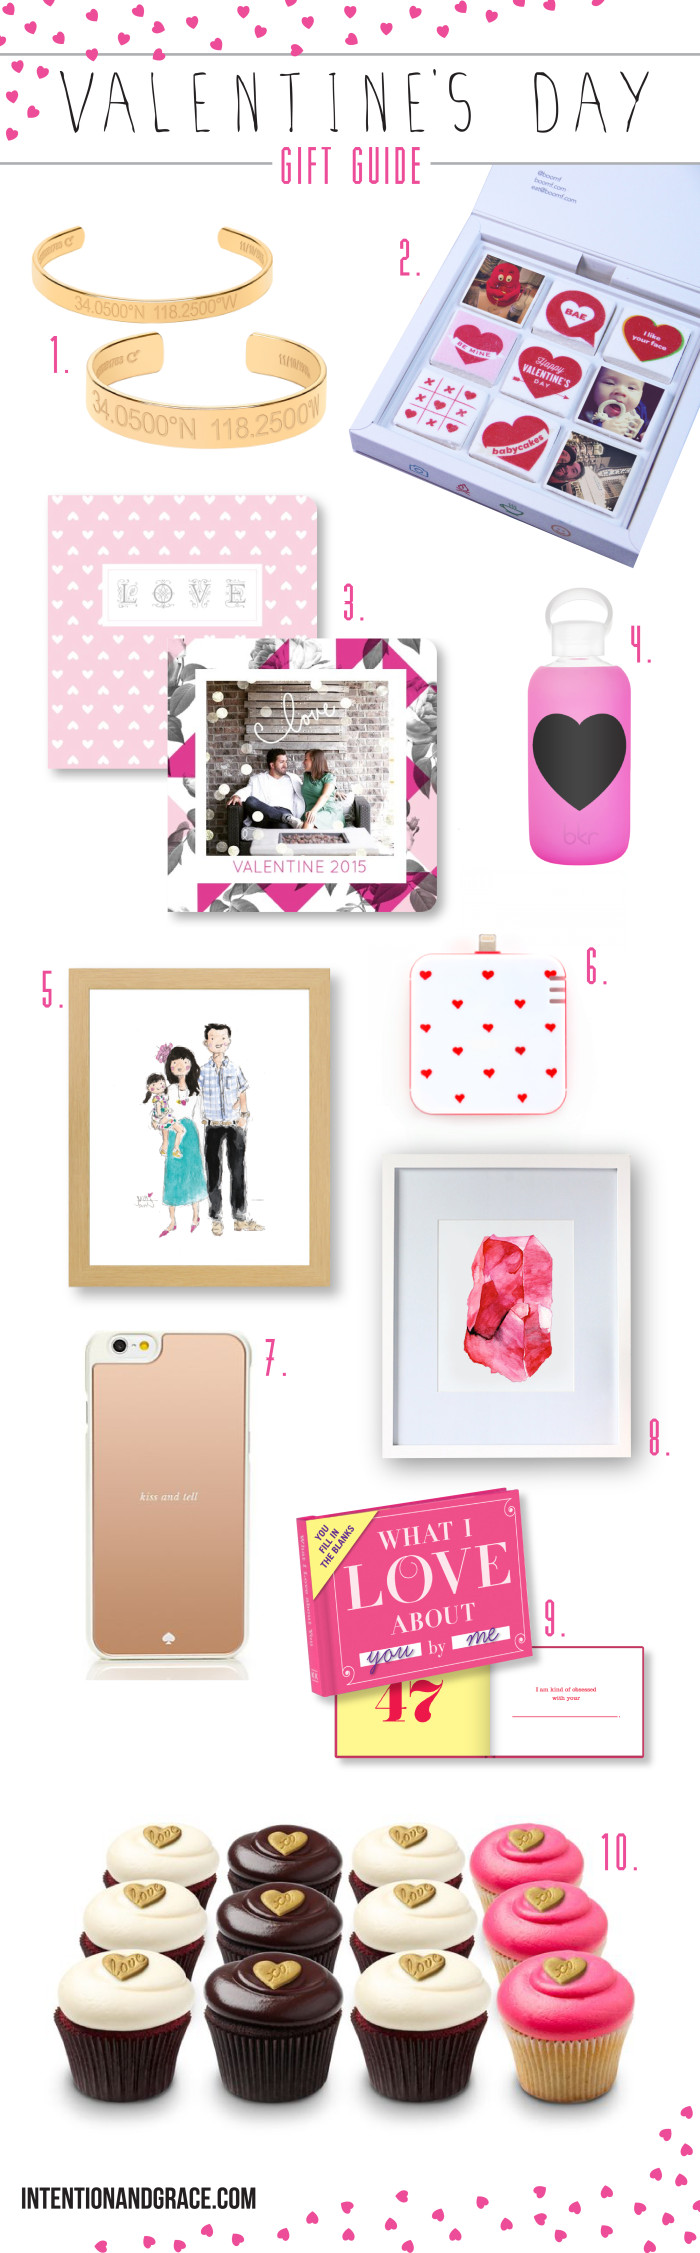 Ten Valentine's day items you'll gush over  |  Valentines Day gift guide 2015  |  intentionandgrace.com